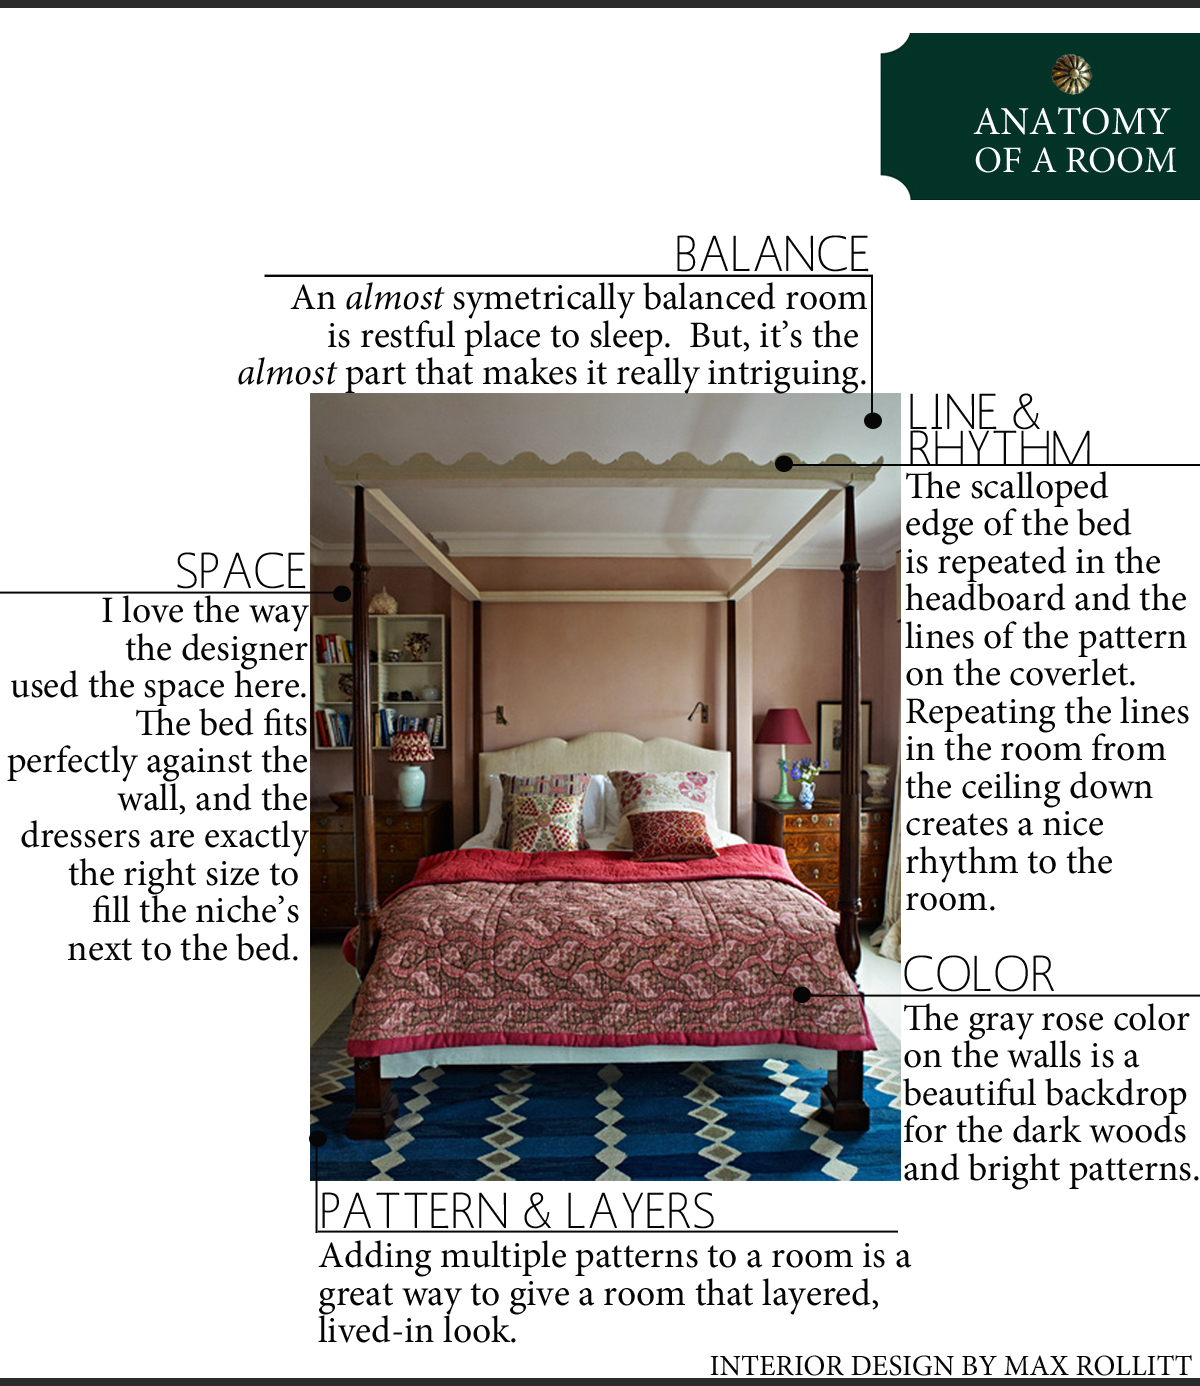 Anatomy of a Room: A London Bedroom | The Anatomy of Design